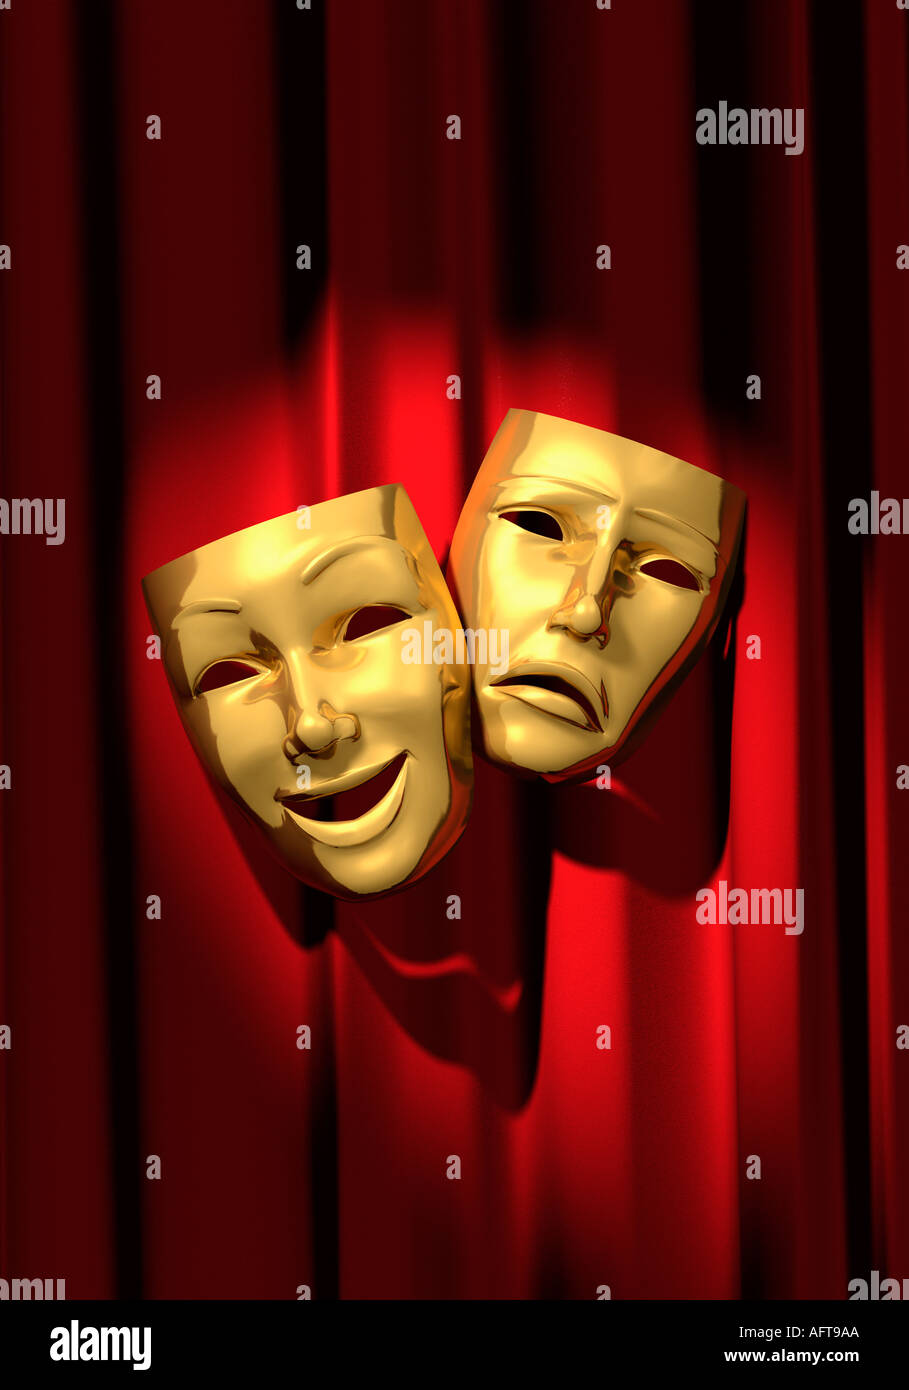 Comedy and Tragedy masks on red curtain. - Stock Image